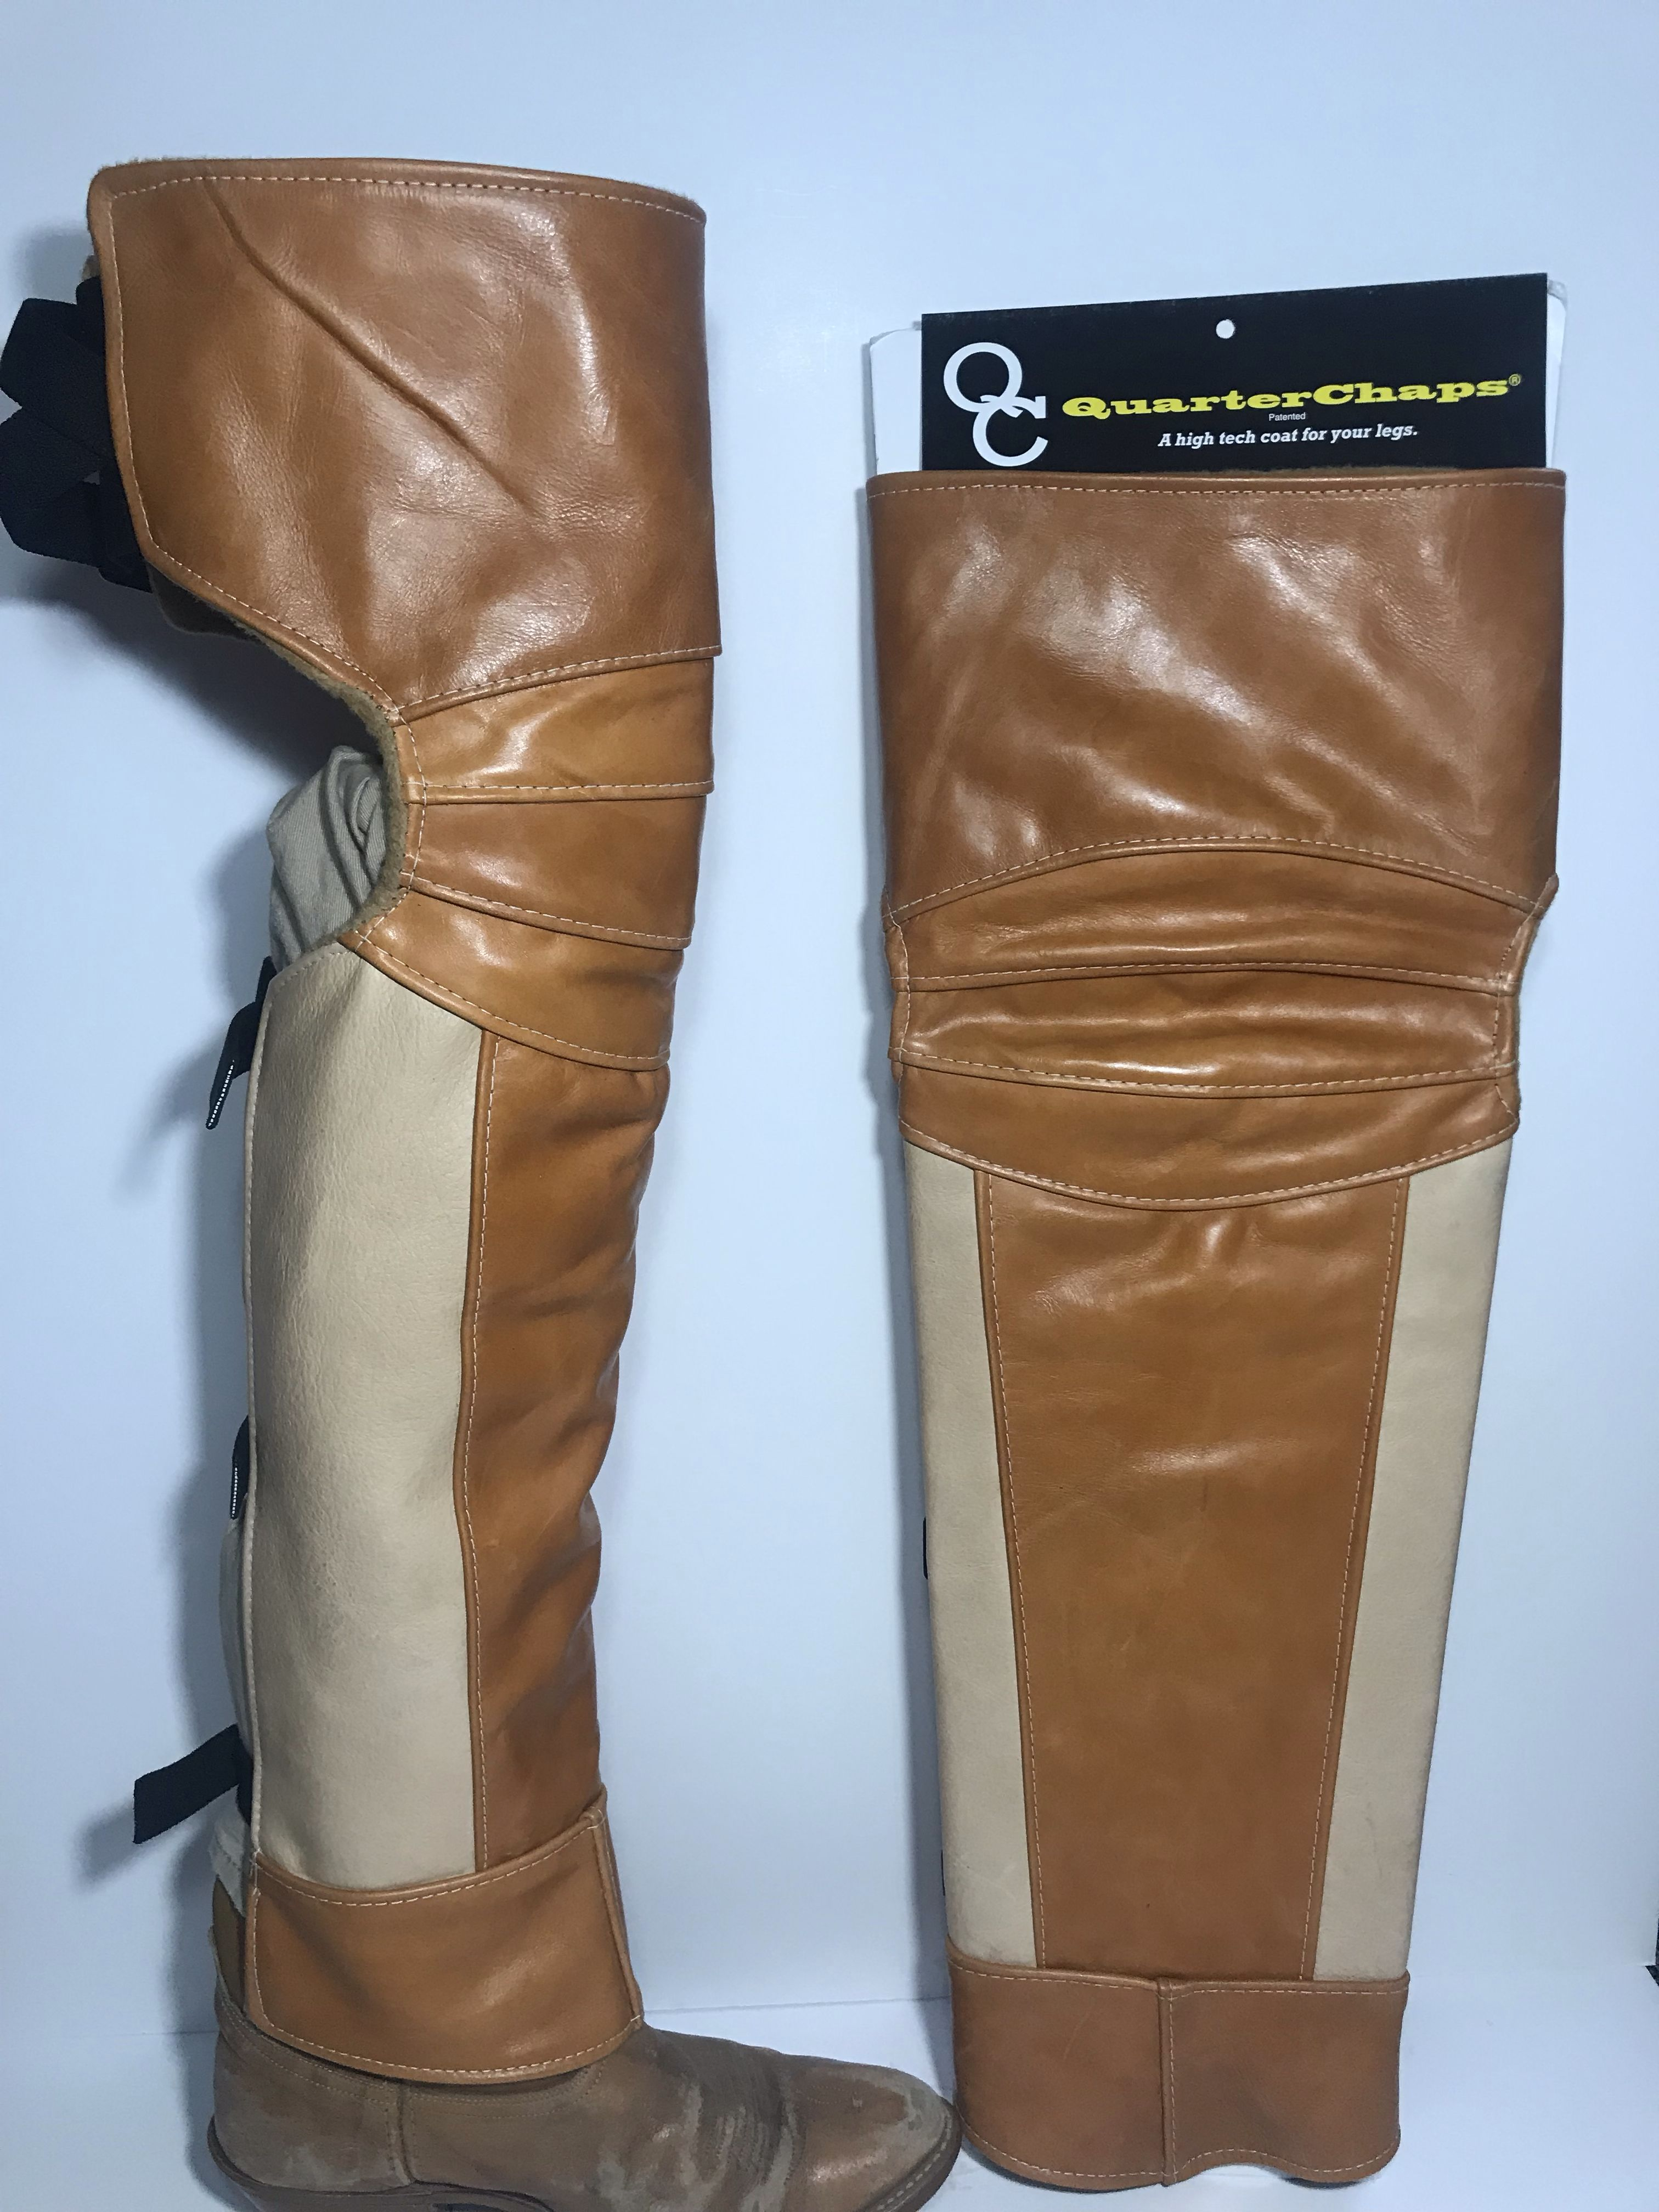 Mid thigh boot legs Horse riding boots, Cowgirl chaps